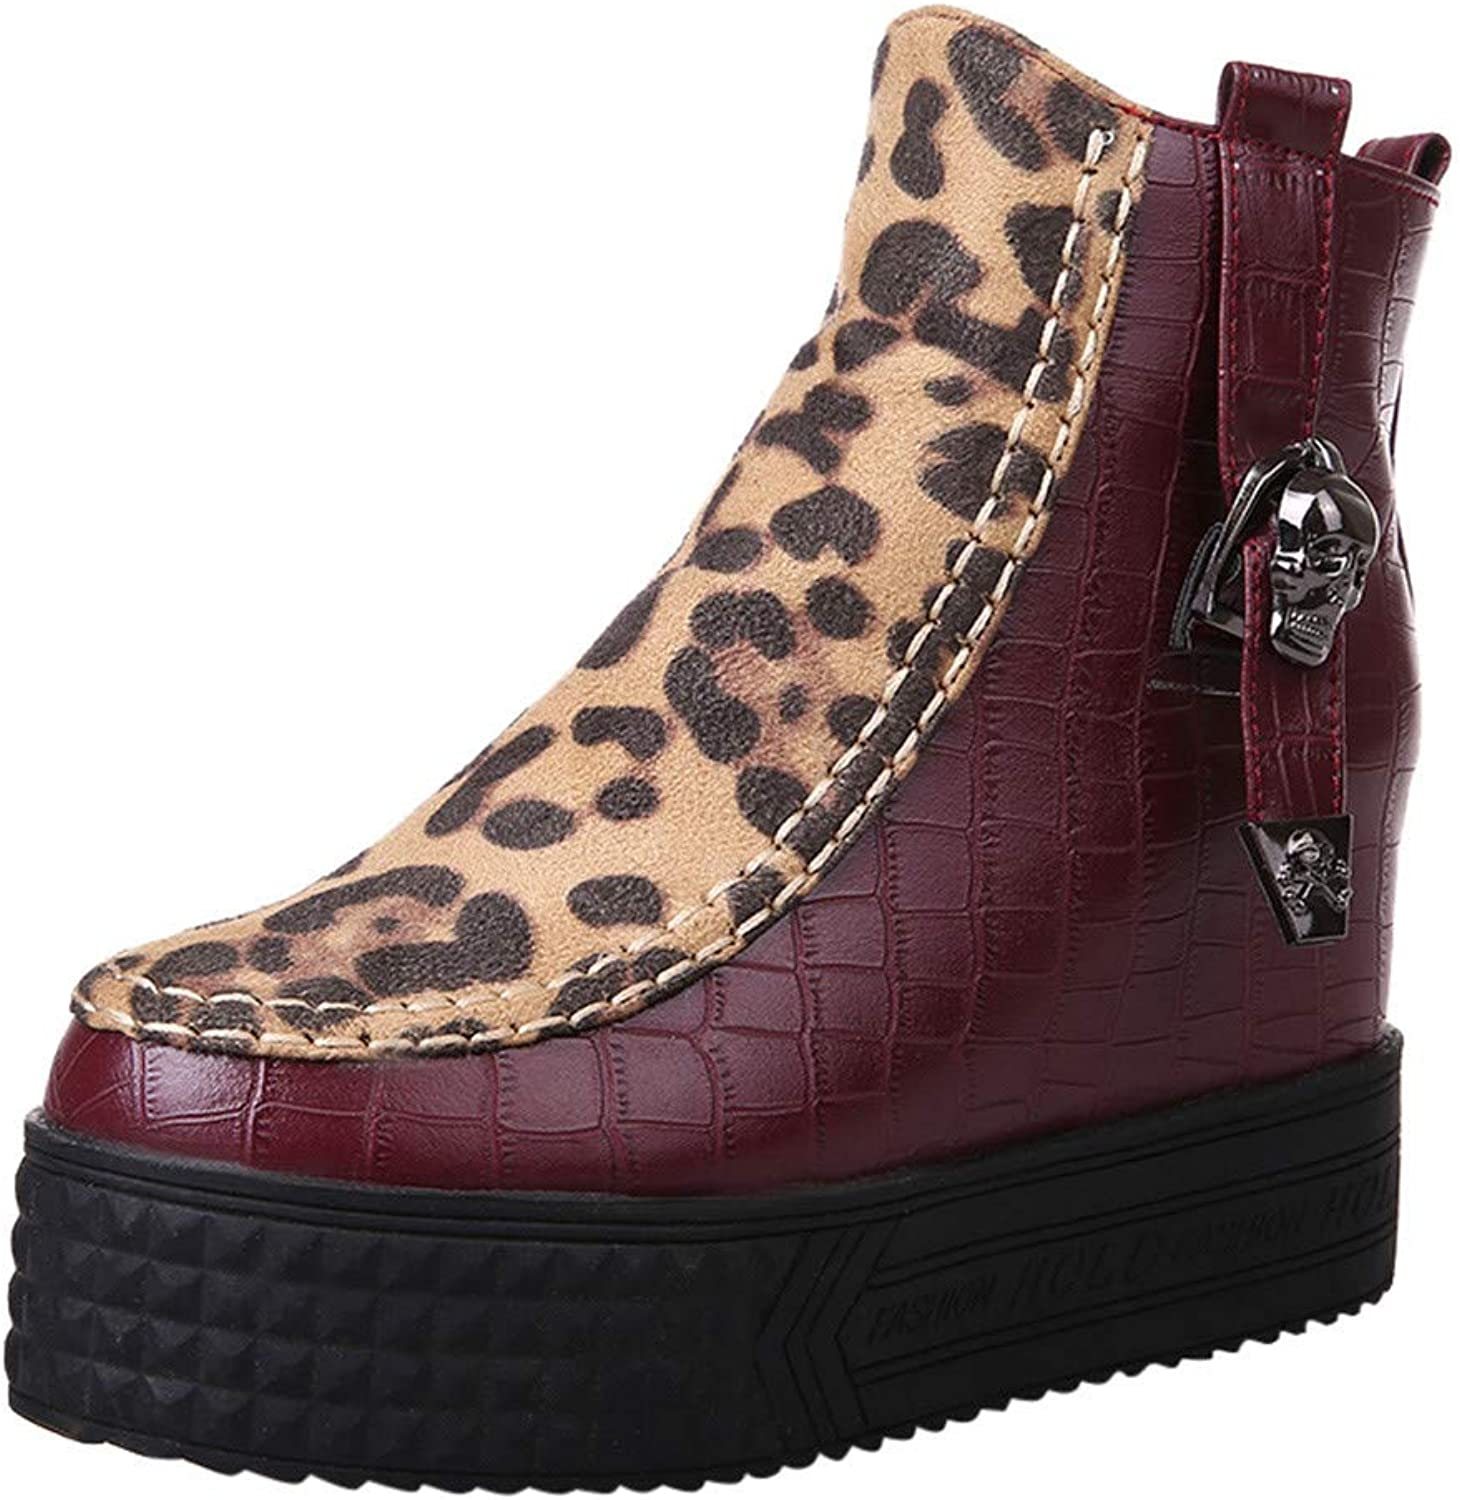 Ladies Fashion Women's Winter High Heel Leopard Zipper Wedges shoes Casual Buckle-Strap Ankle Martin Boots Keep Warm Short shoes